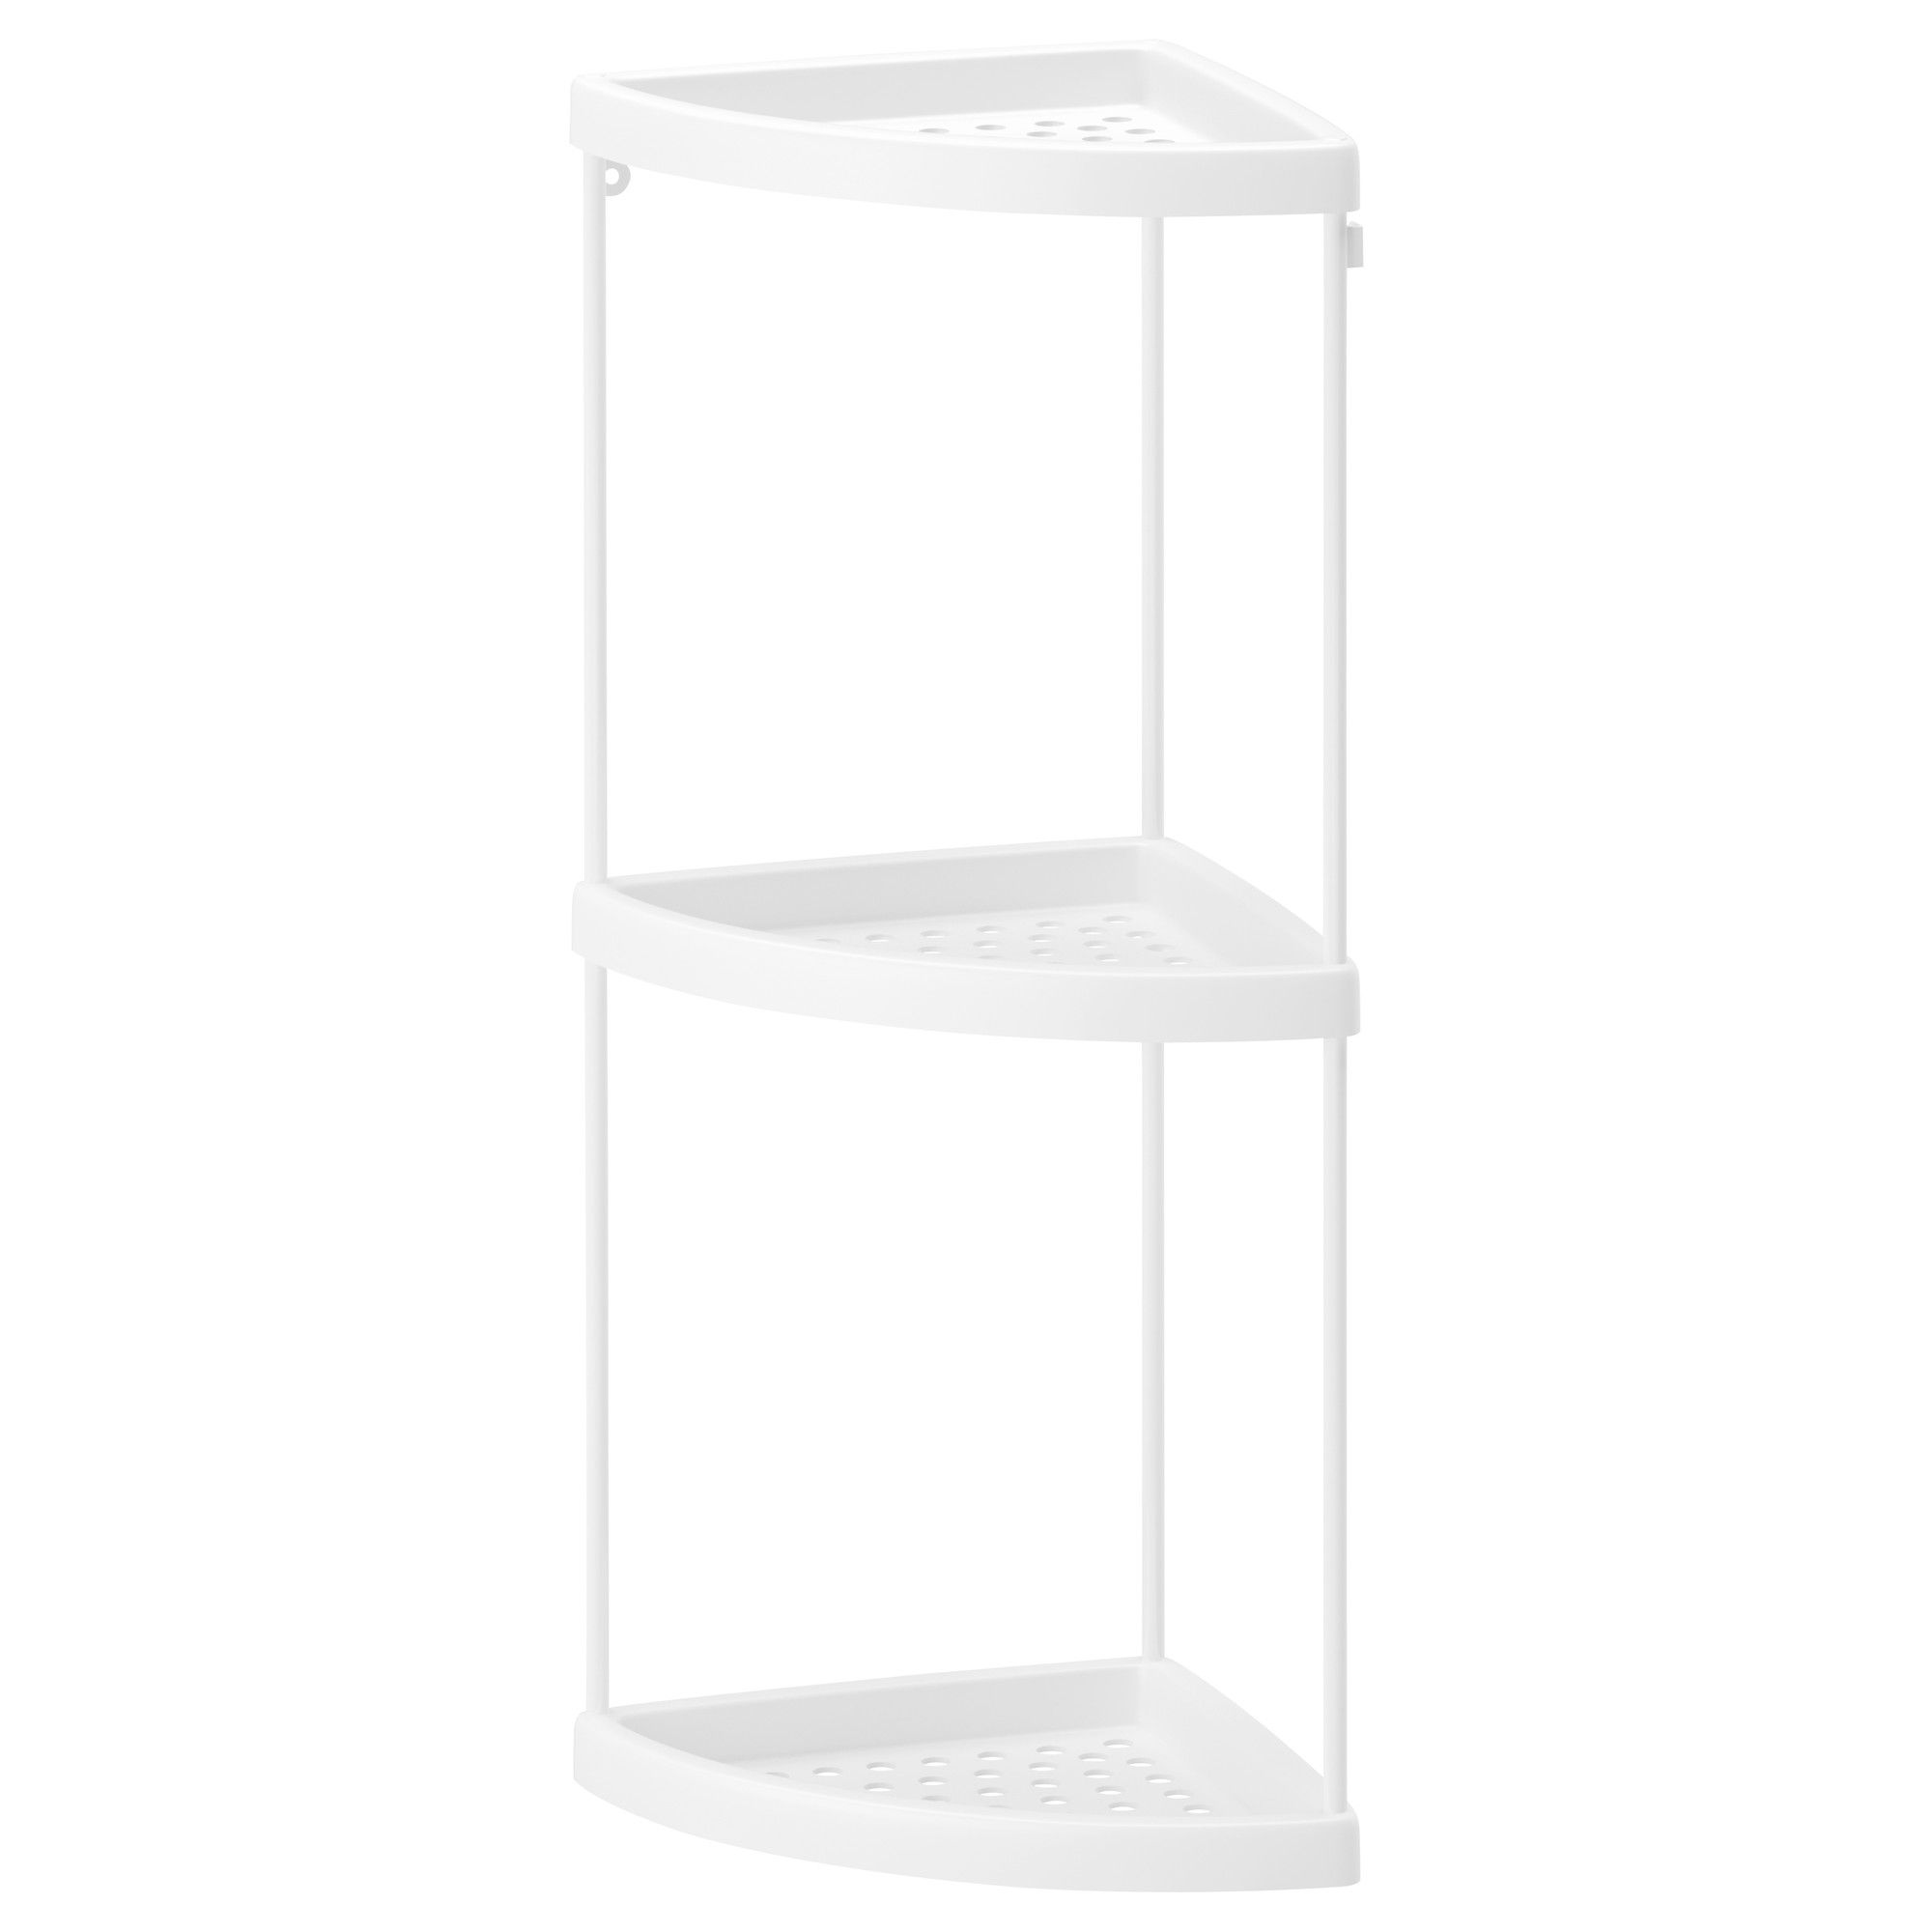 Corner Laundry Shelf Bolmen Corner Shelf Ikea This Can Help Separate Our